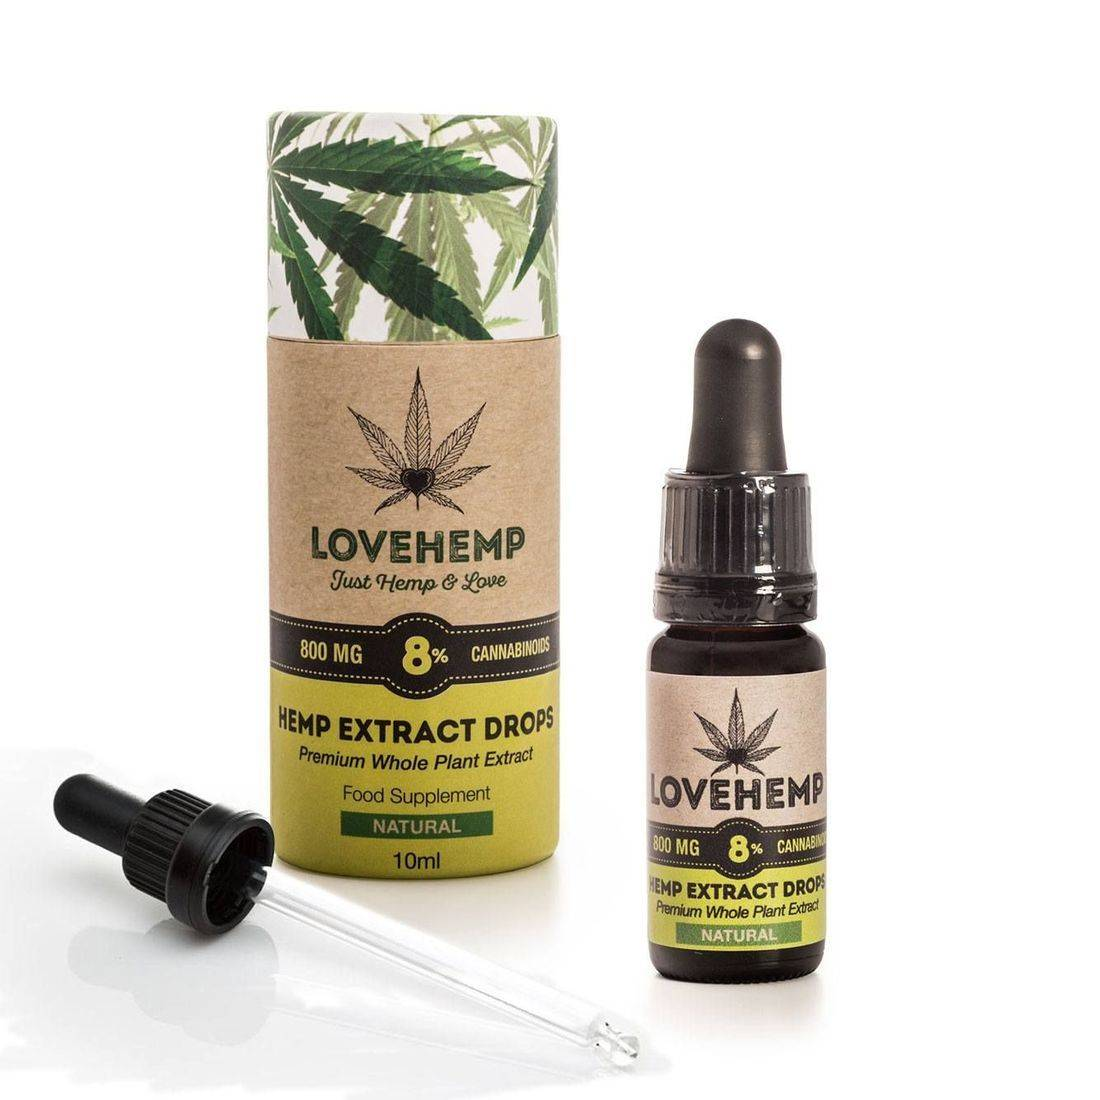 Love Hemp CBD Oil Cannabis Hemp Health